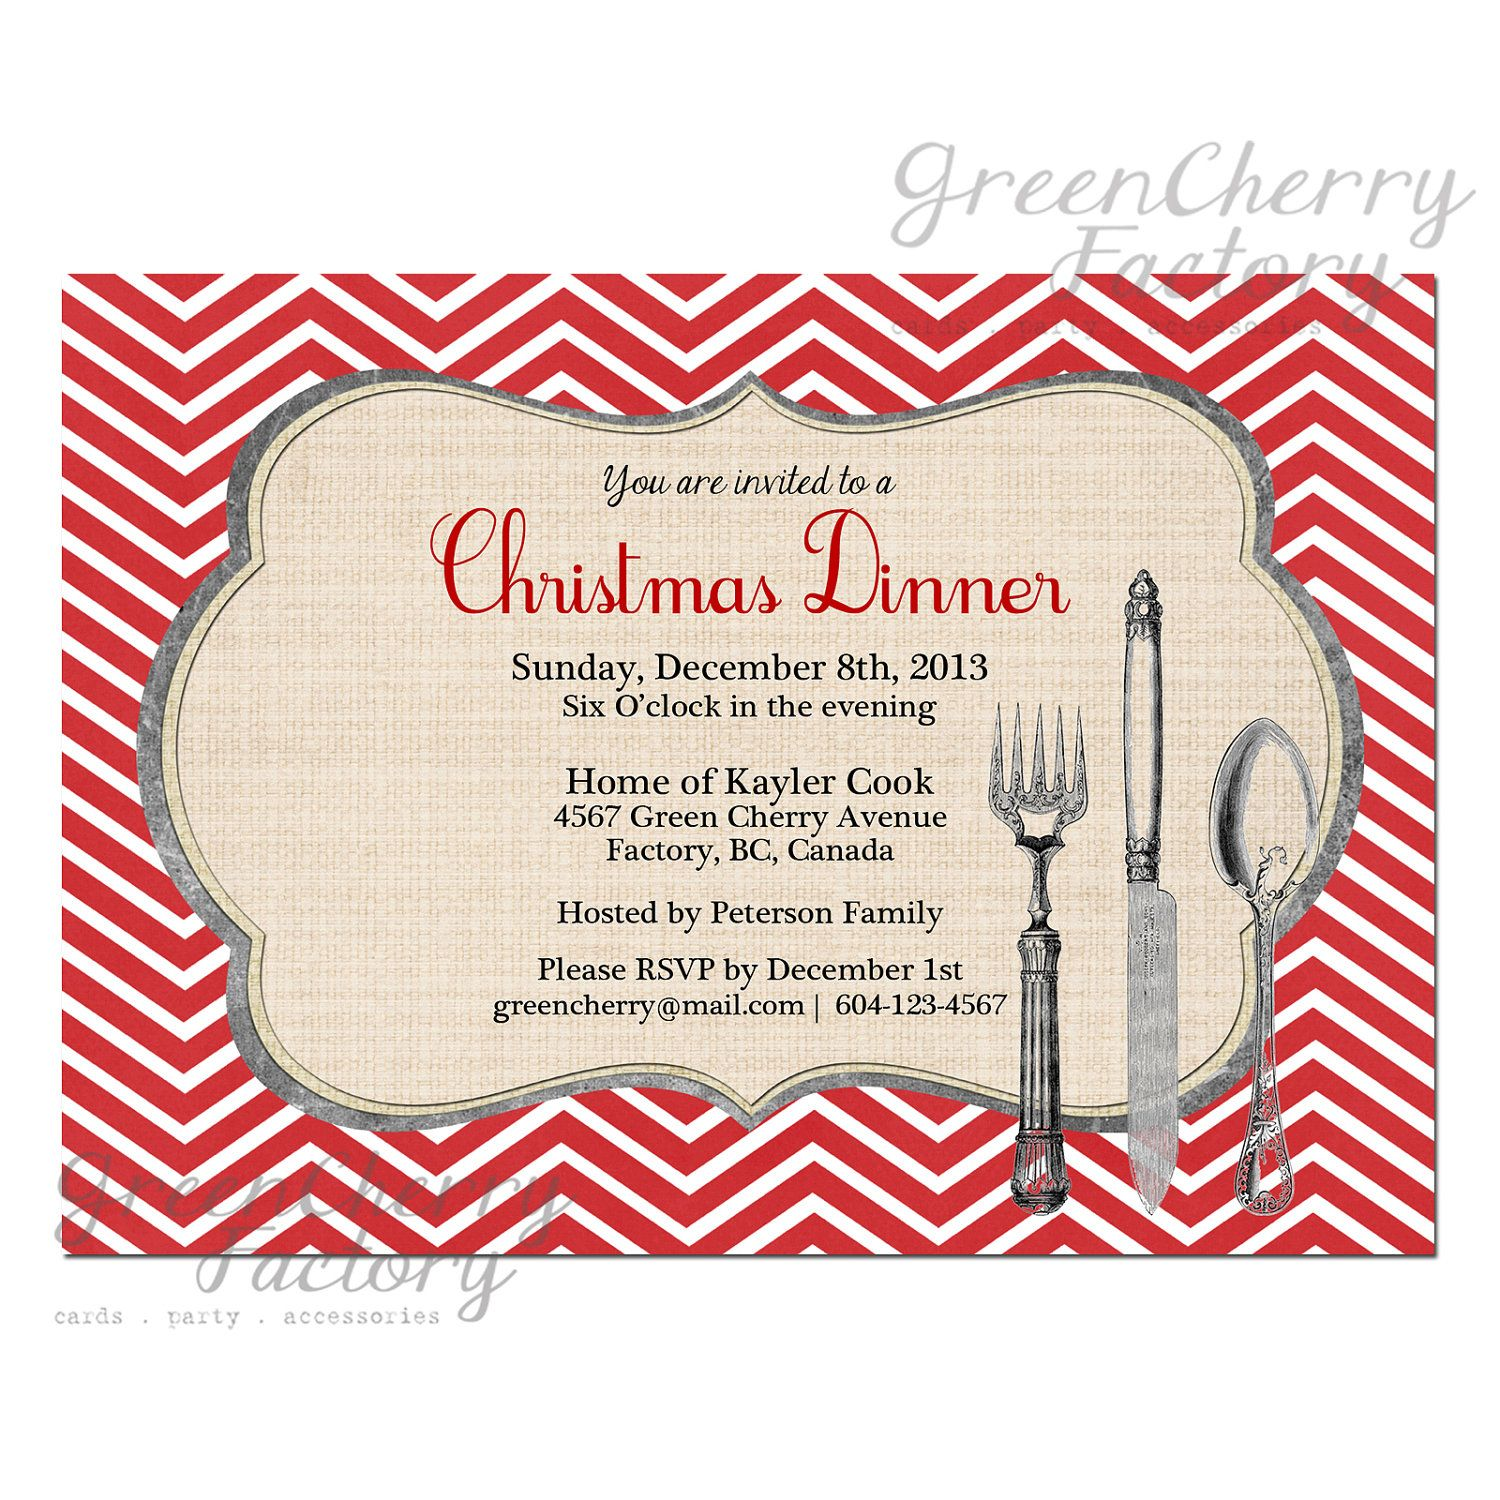 Christmas party dinner invitation red chevron background christmas party dinner invitation red chevron background printable invitation no161 1500 stopboris Image collections